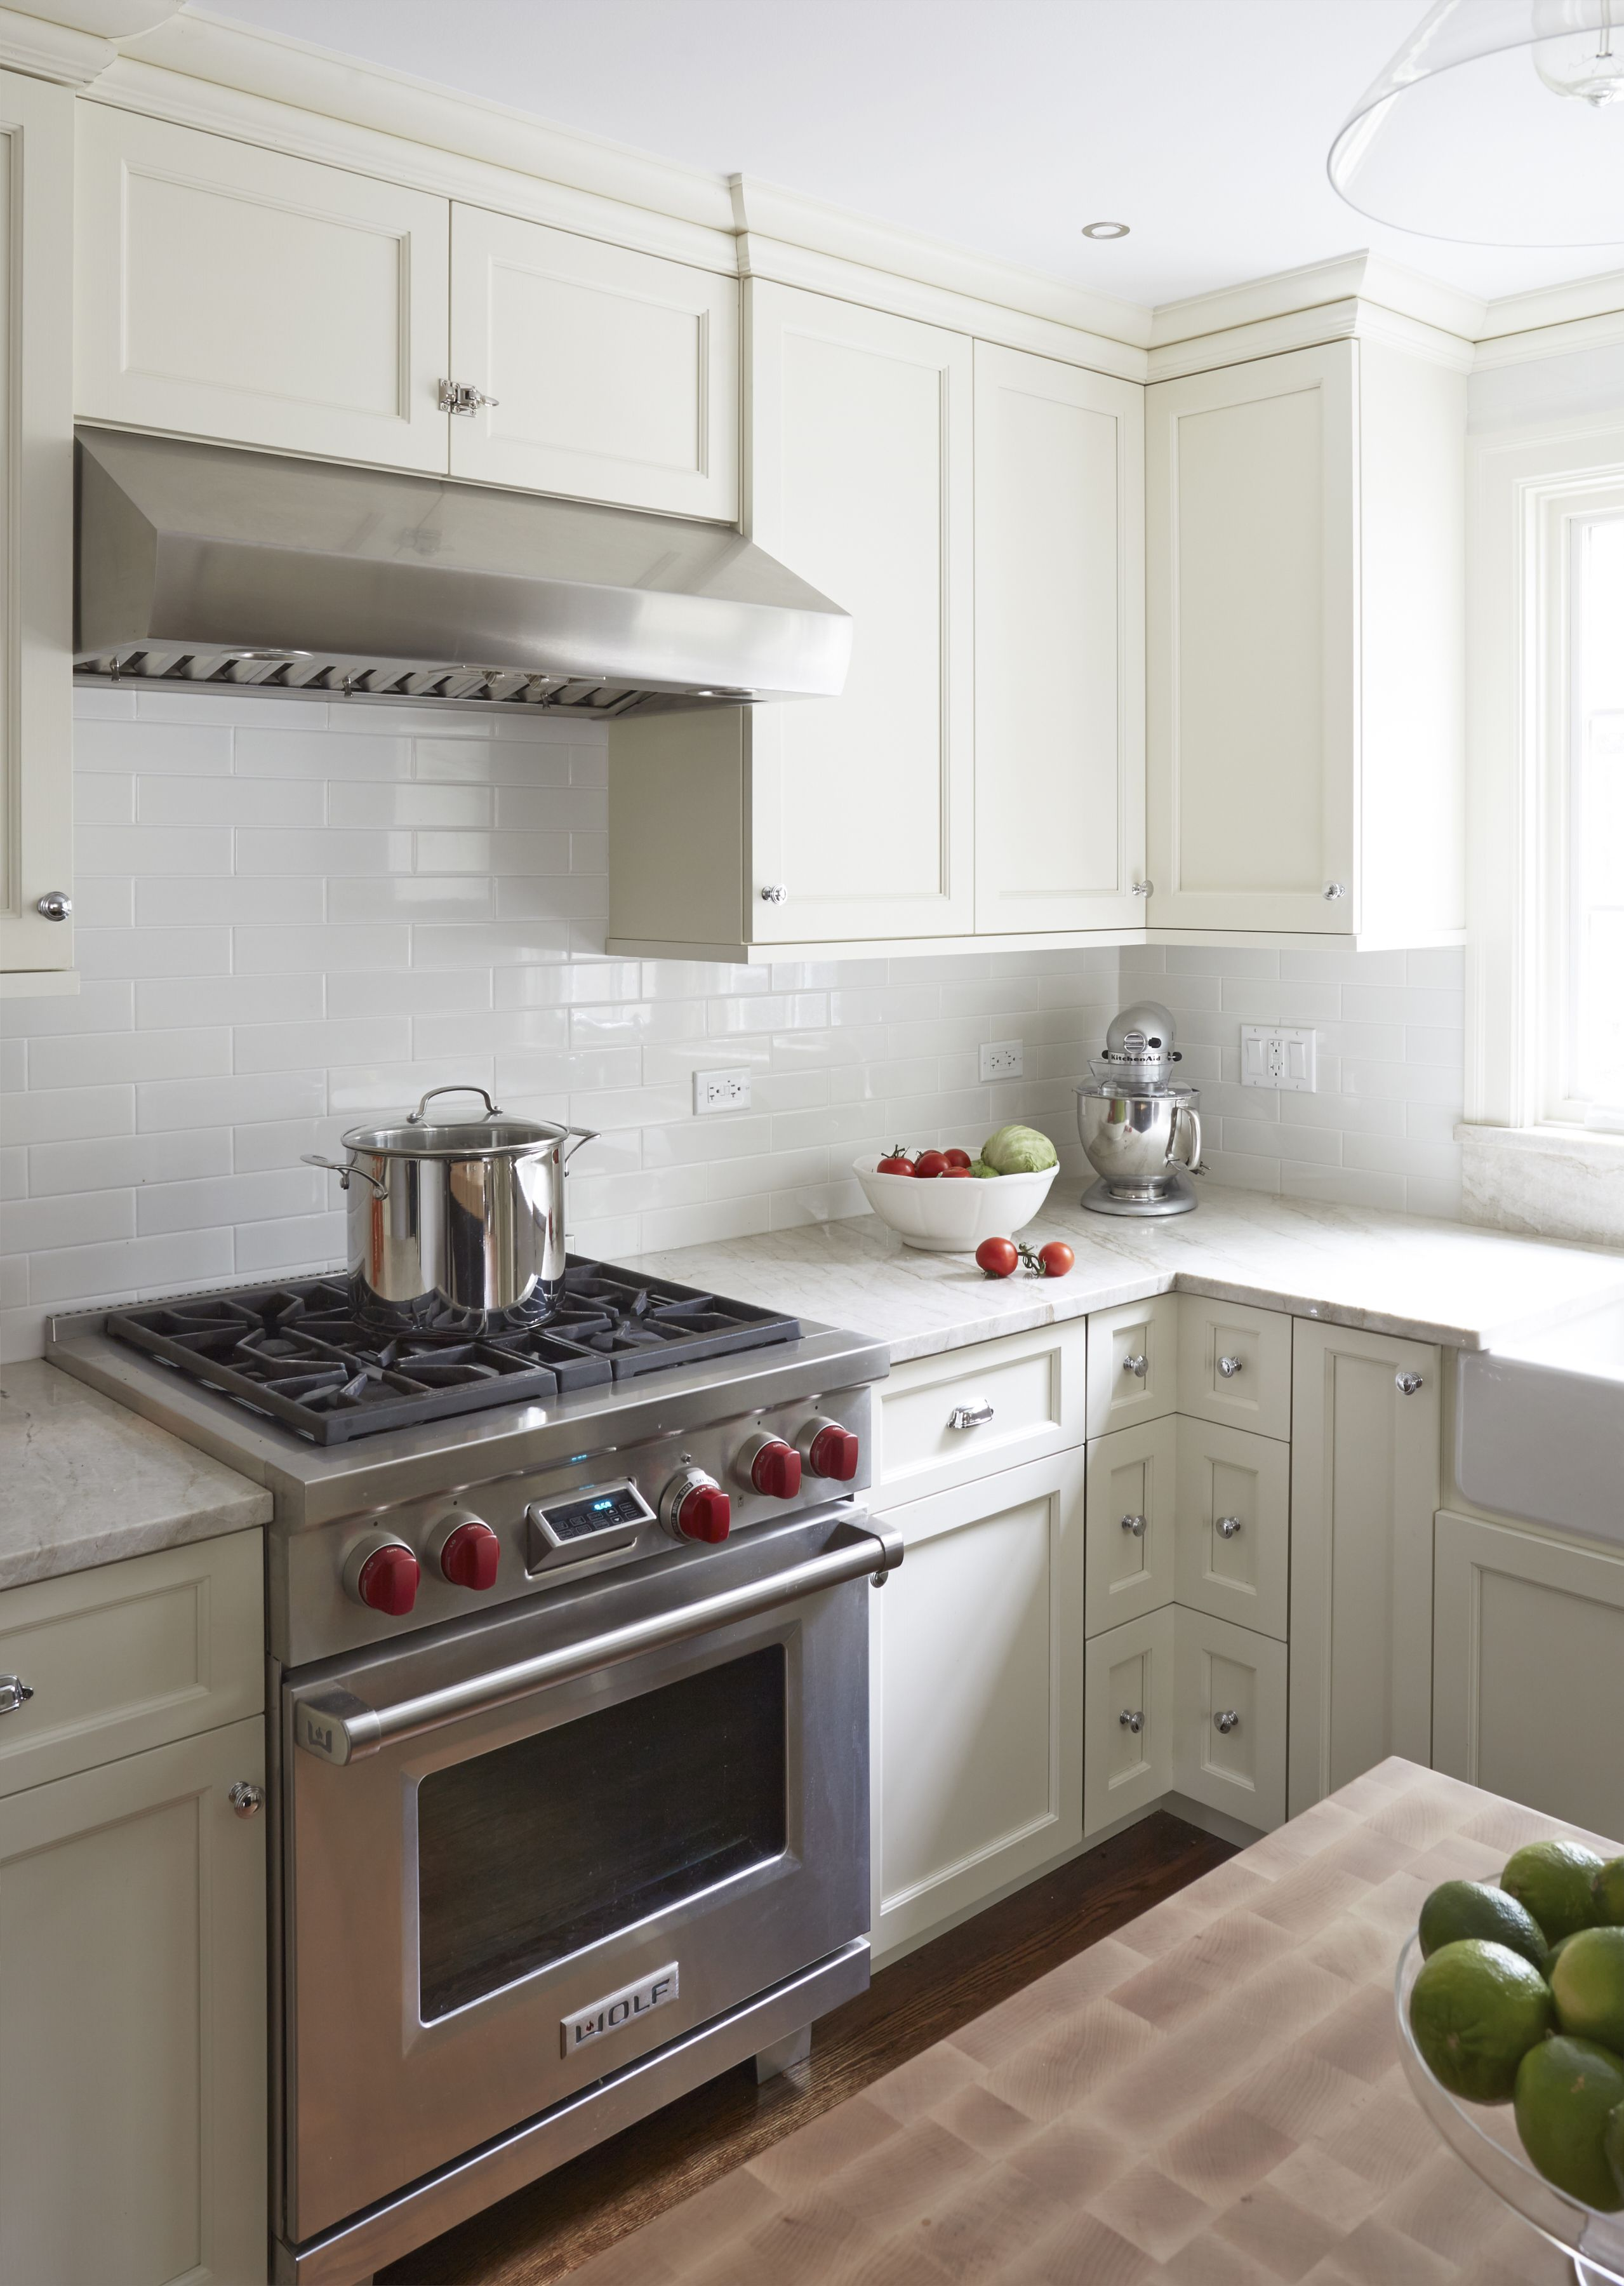 Enchanting Dutch Made Kitchen Cabinets Gift - Kitchen Cabinets ...